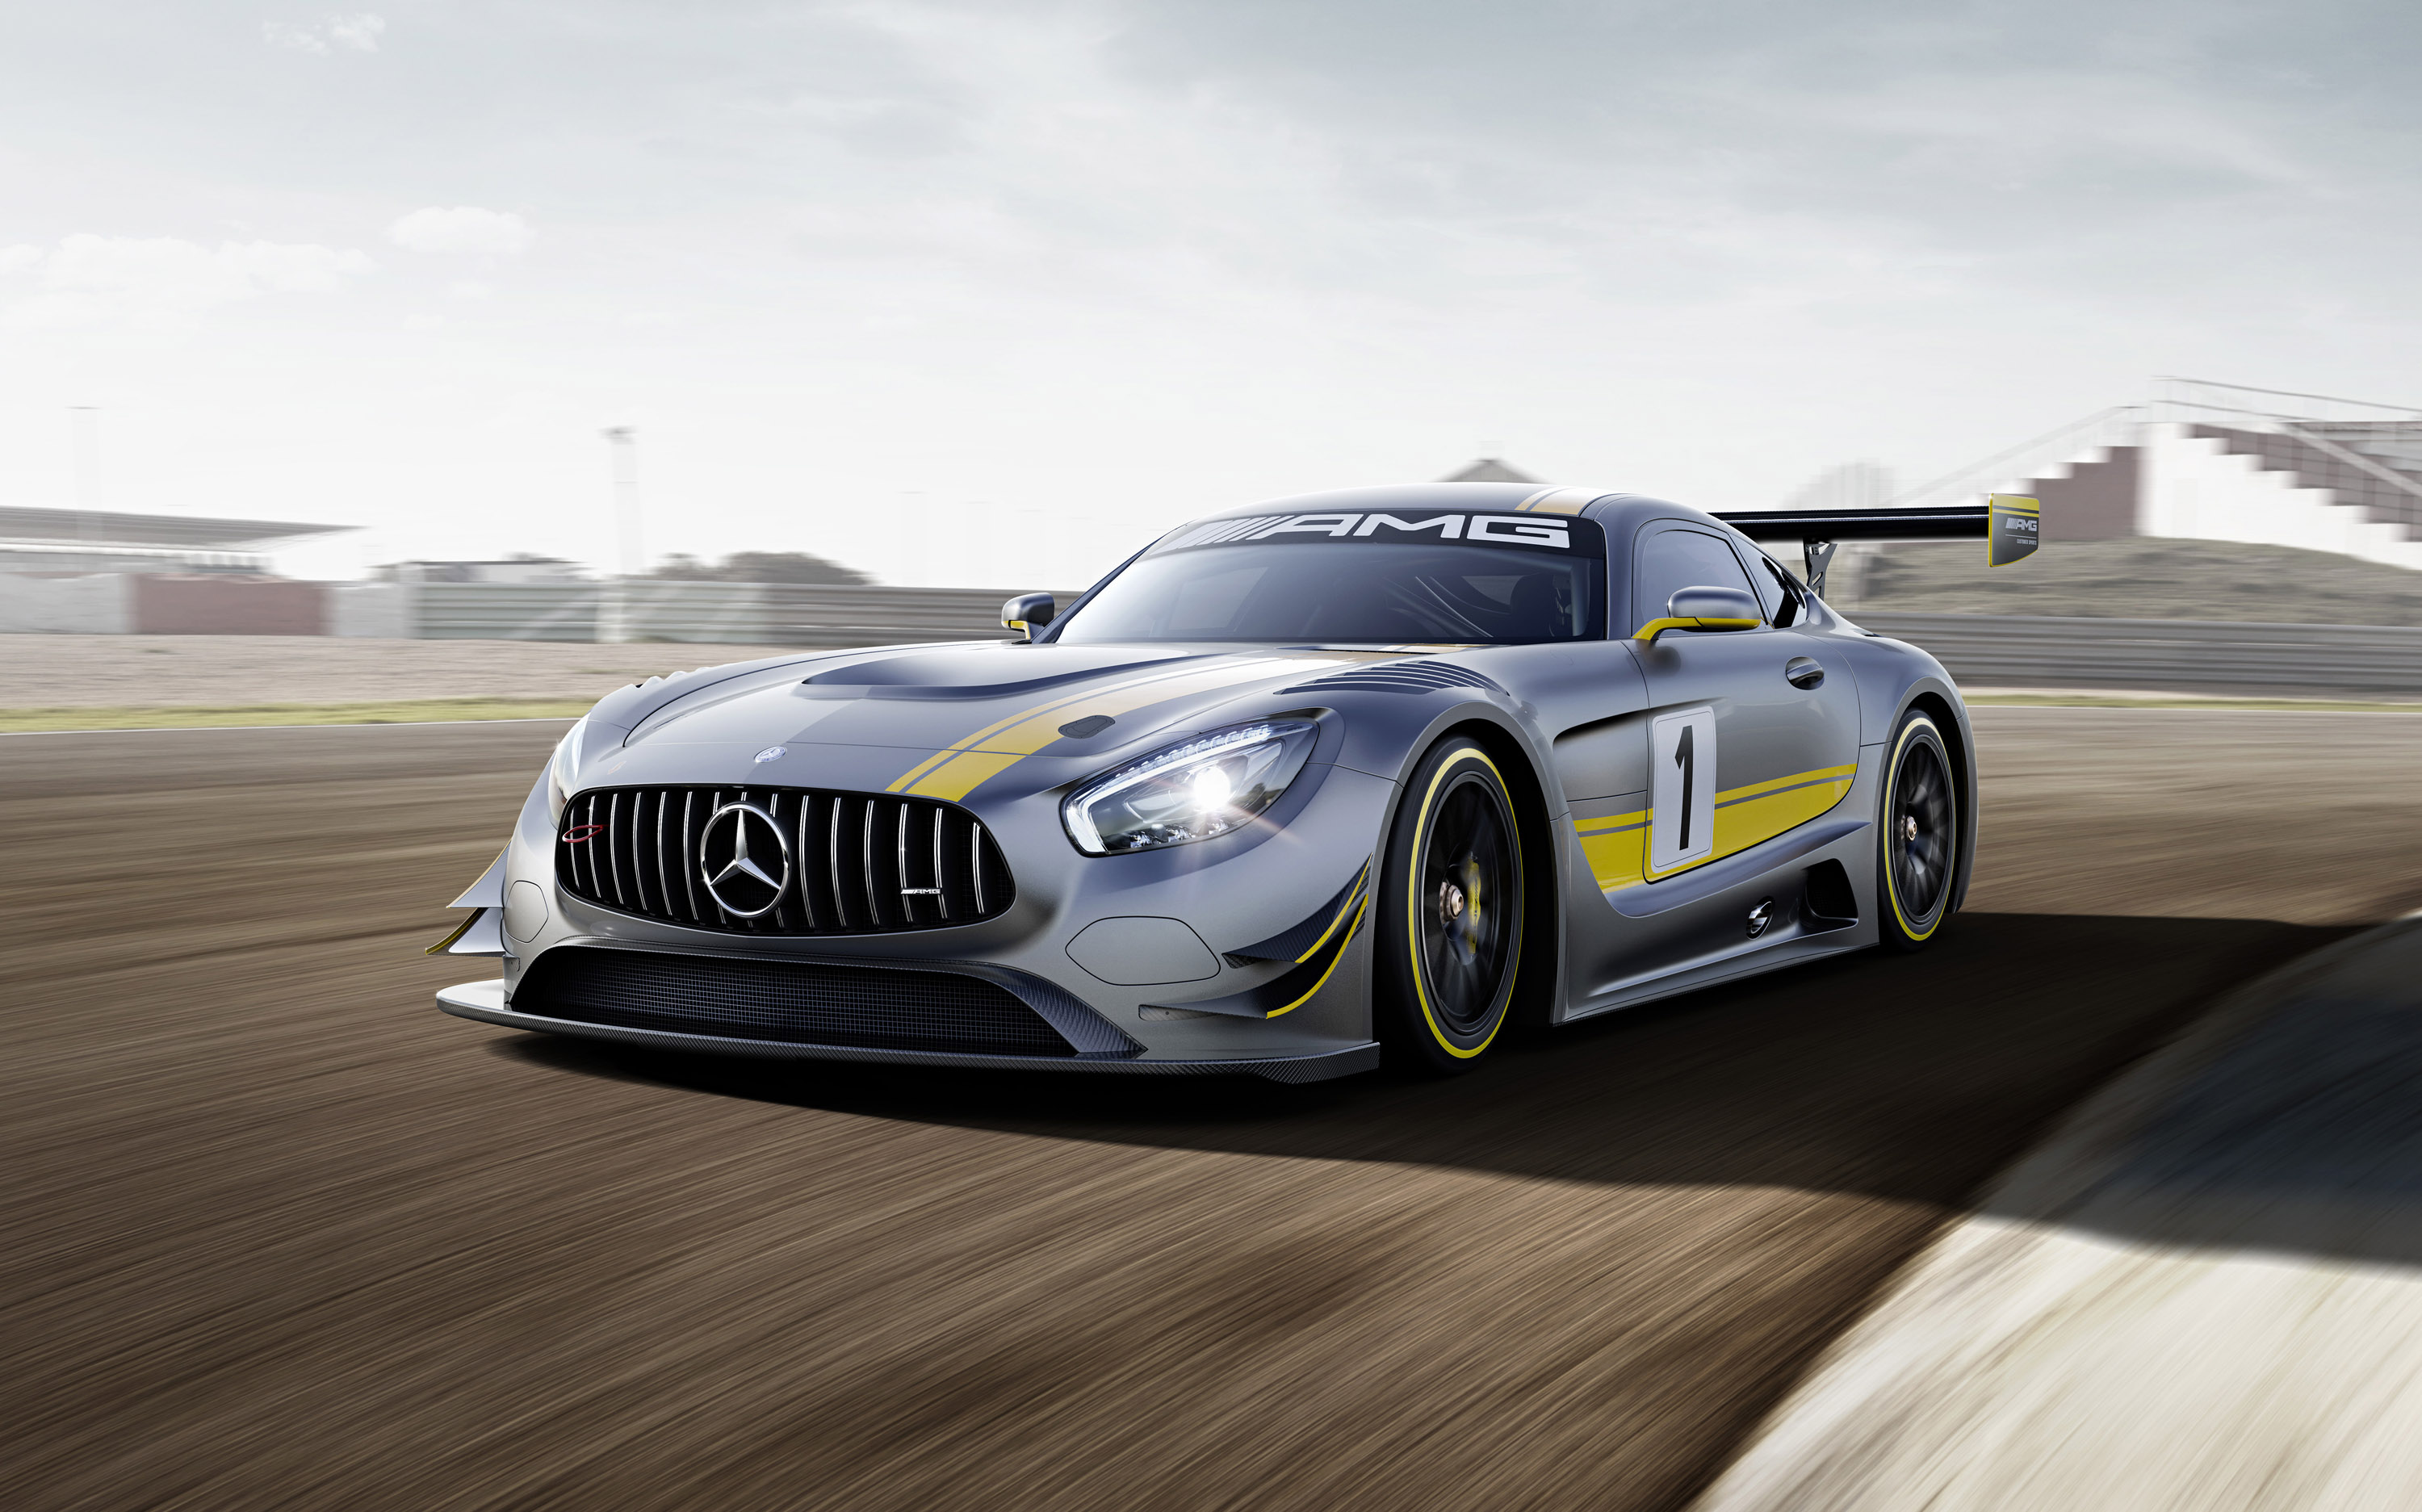 Mercedes-Benz AMG GT3 photo #1